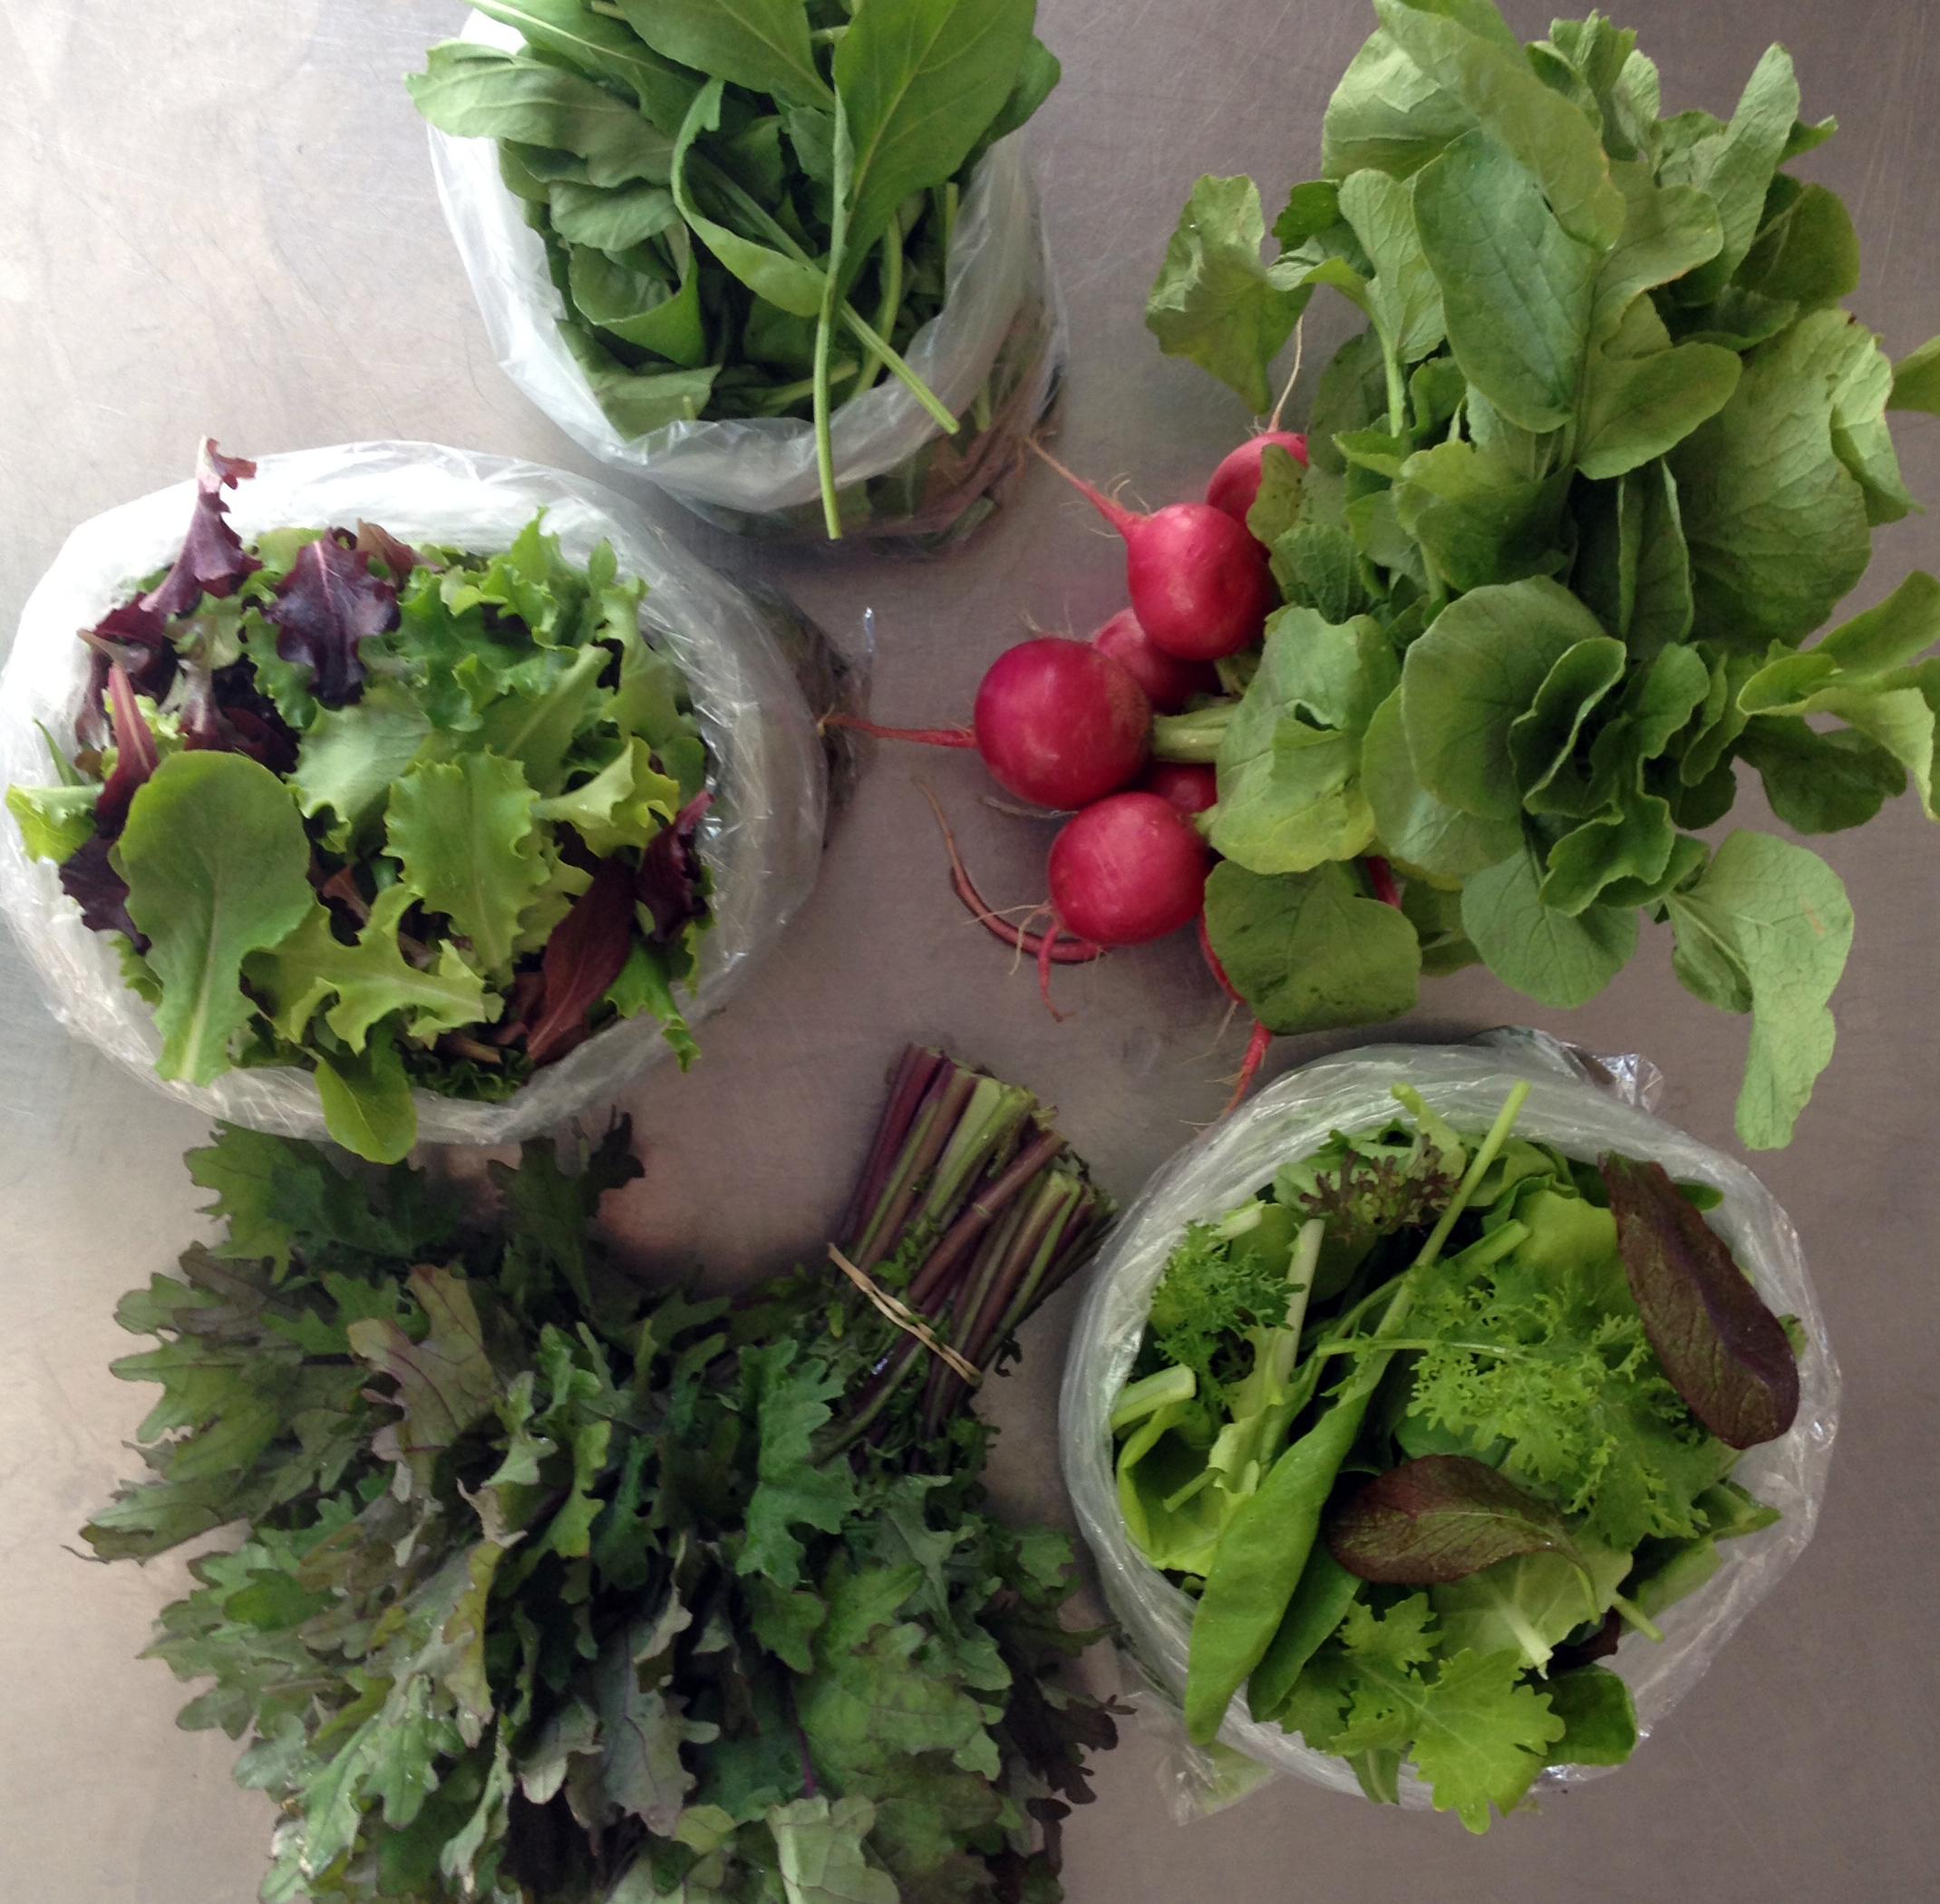 Clockwise from top: Arugula, Radishes, Mustard Mix, Red Kale, Lettuce Mix